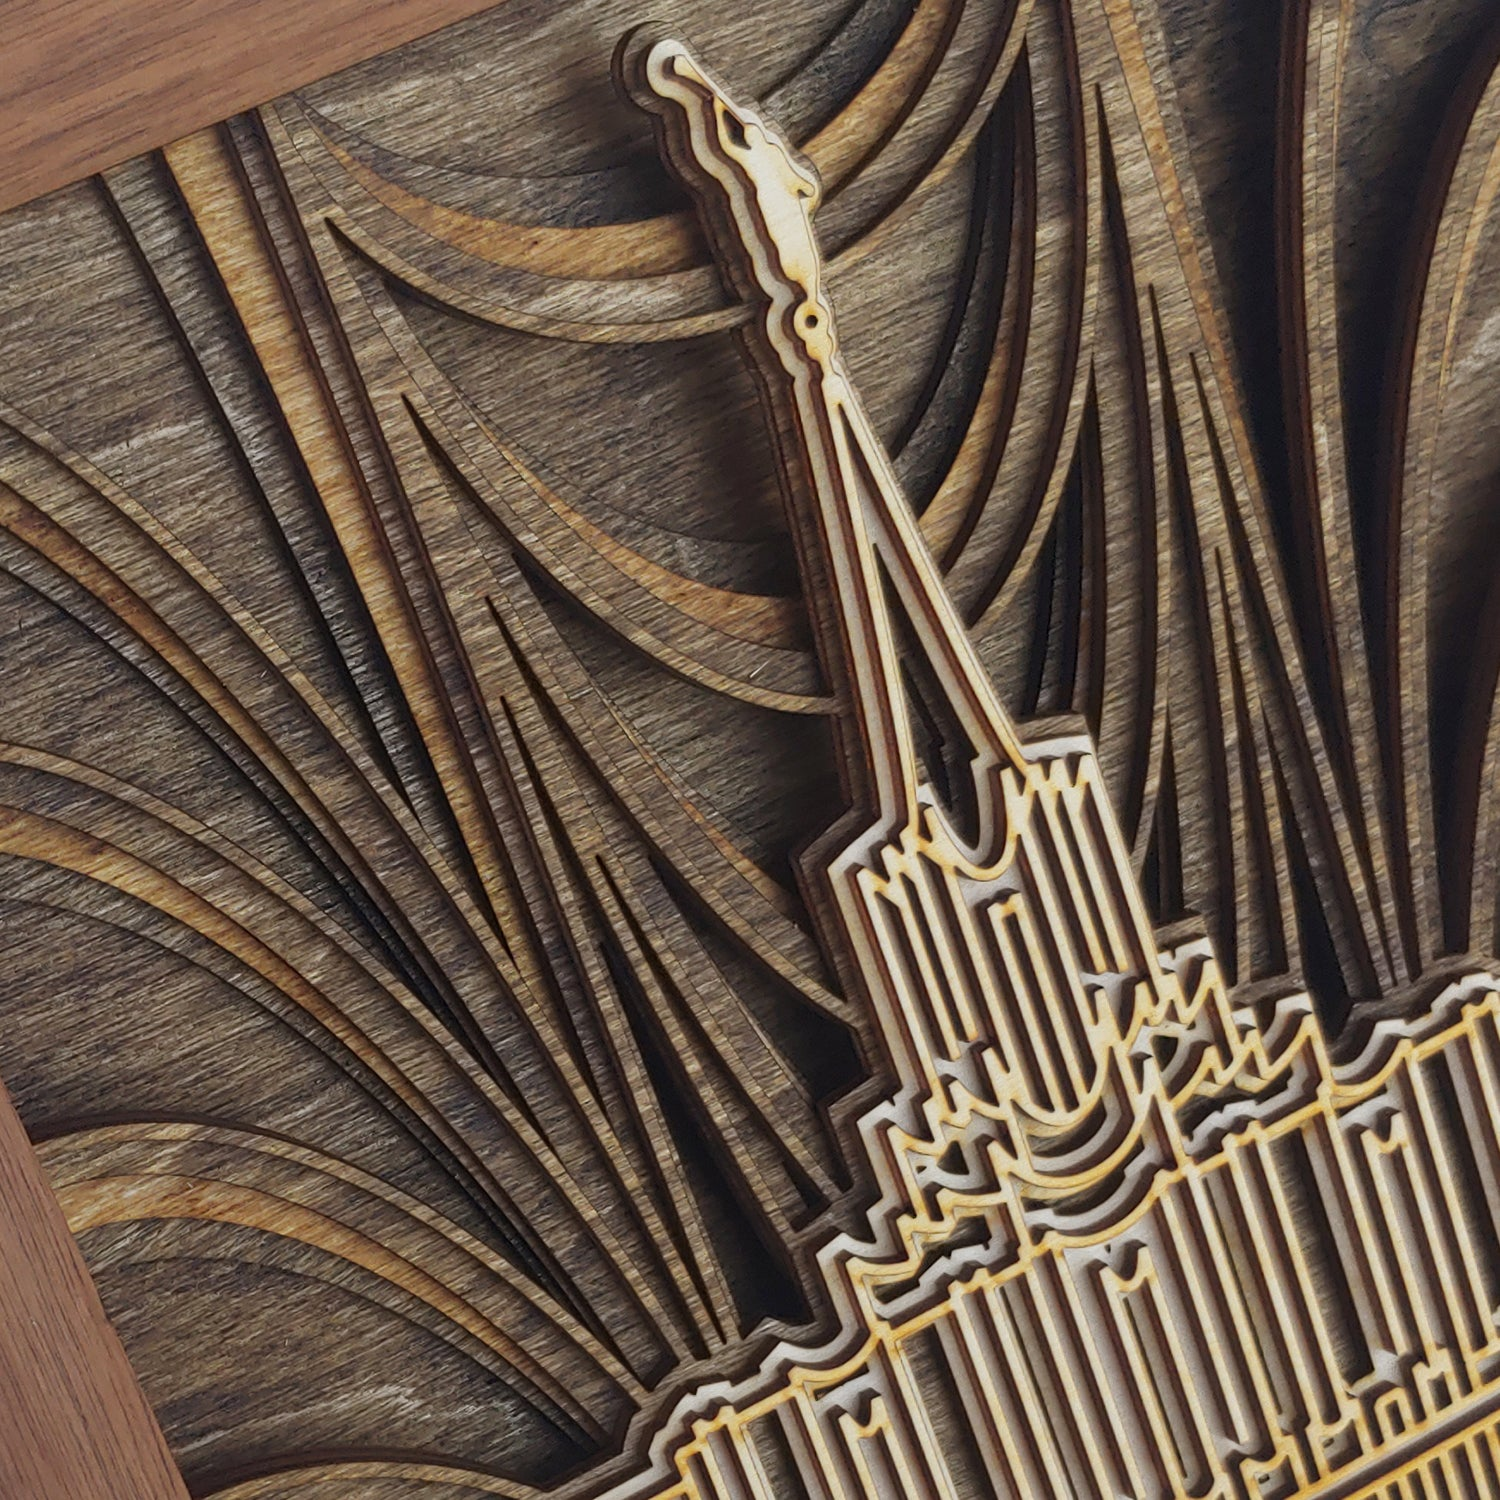 New Design Creation for Layered Temple Wood Plaque